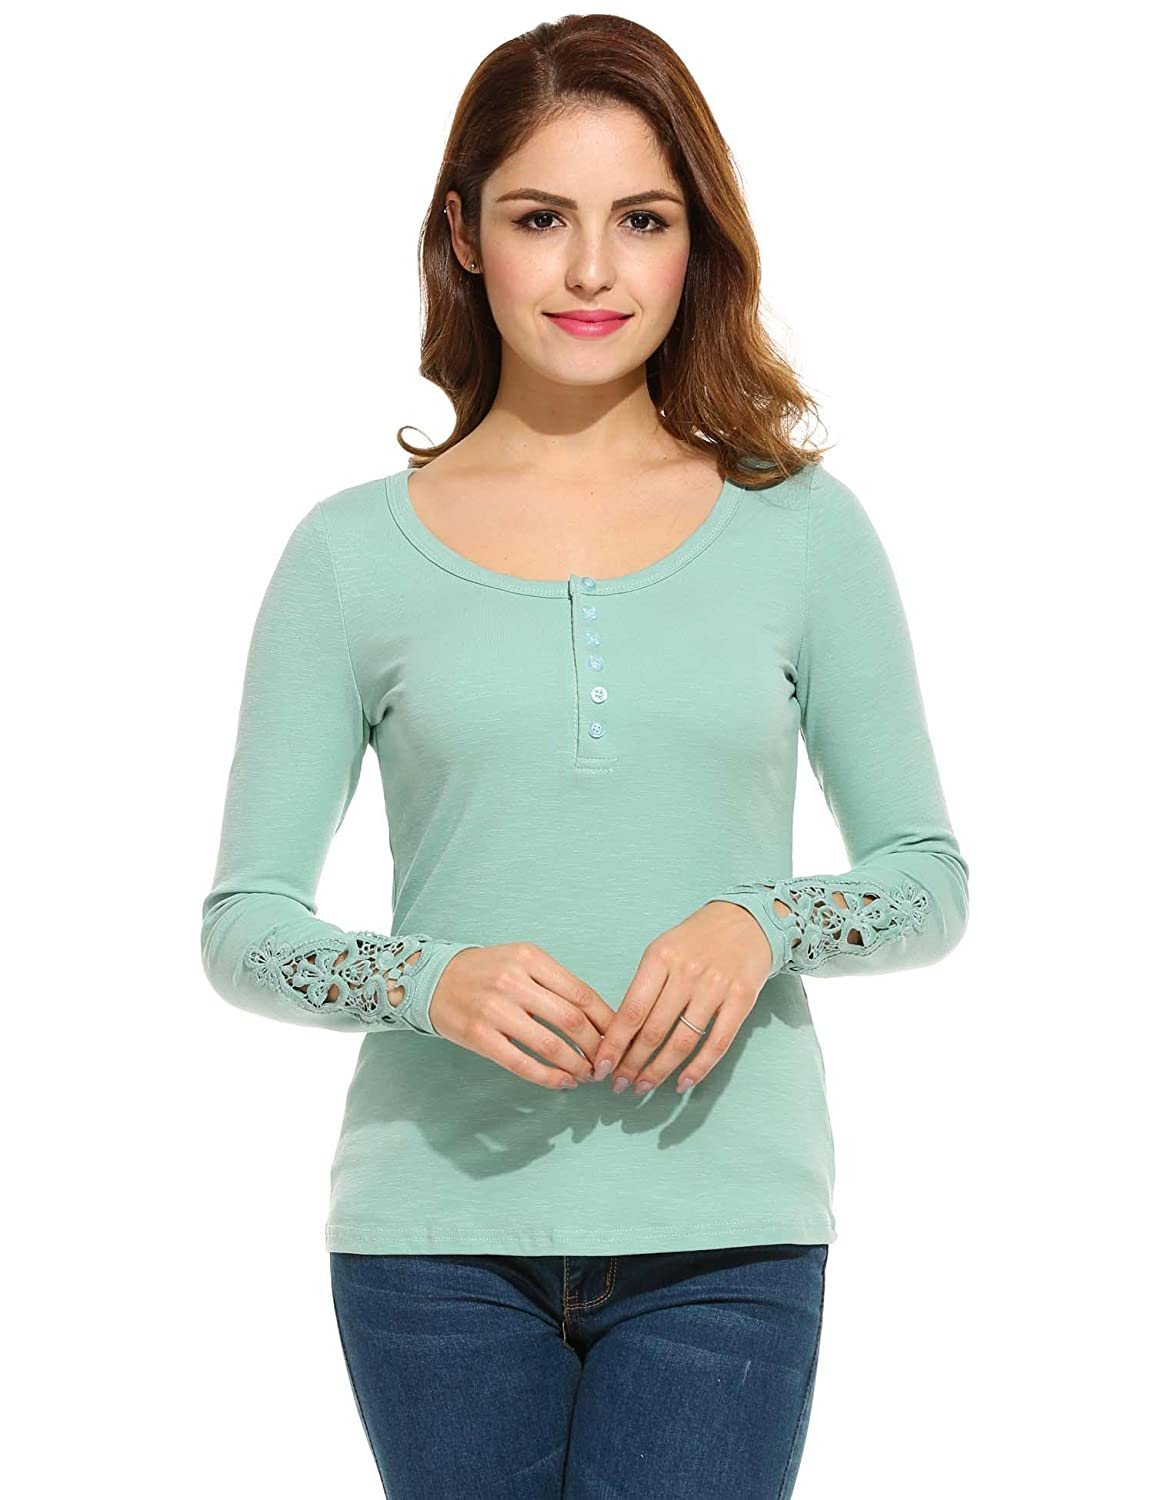 Diaper Casual Teen Girls Tees T Shirts T-Shirt Fitted Long Sleeve Tops Slim  Fit Pullover Jersey T-Shirt Top Henleys at Amazon Women's Clothing store: